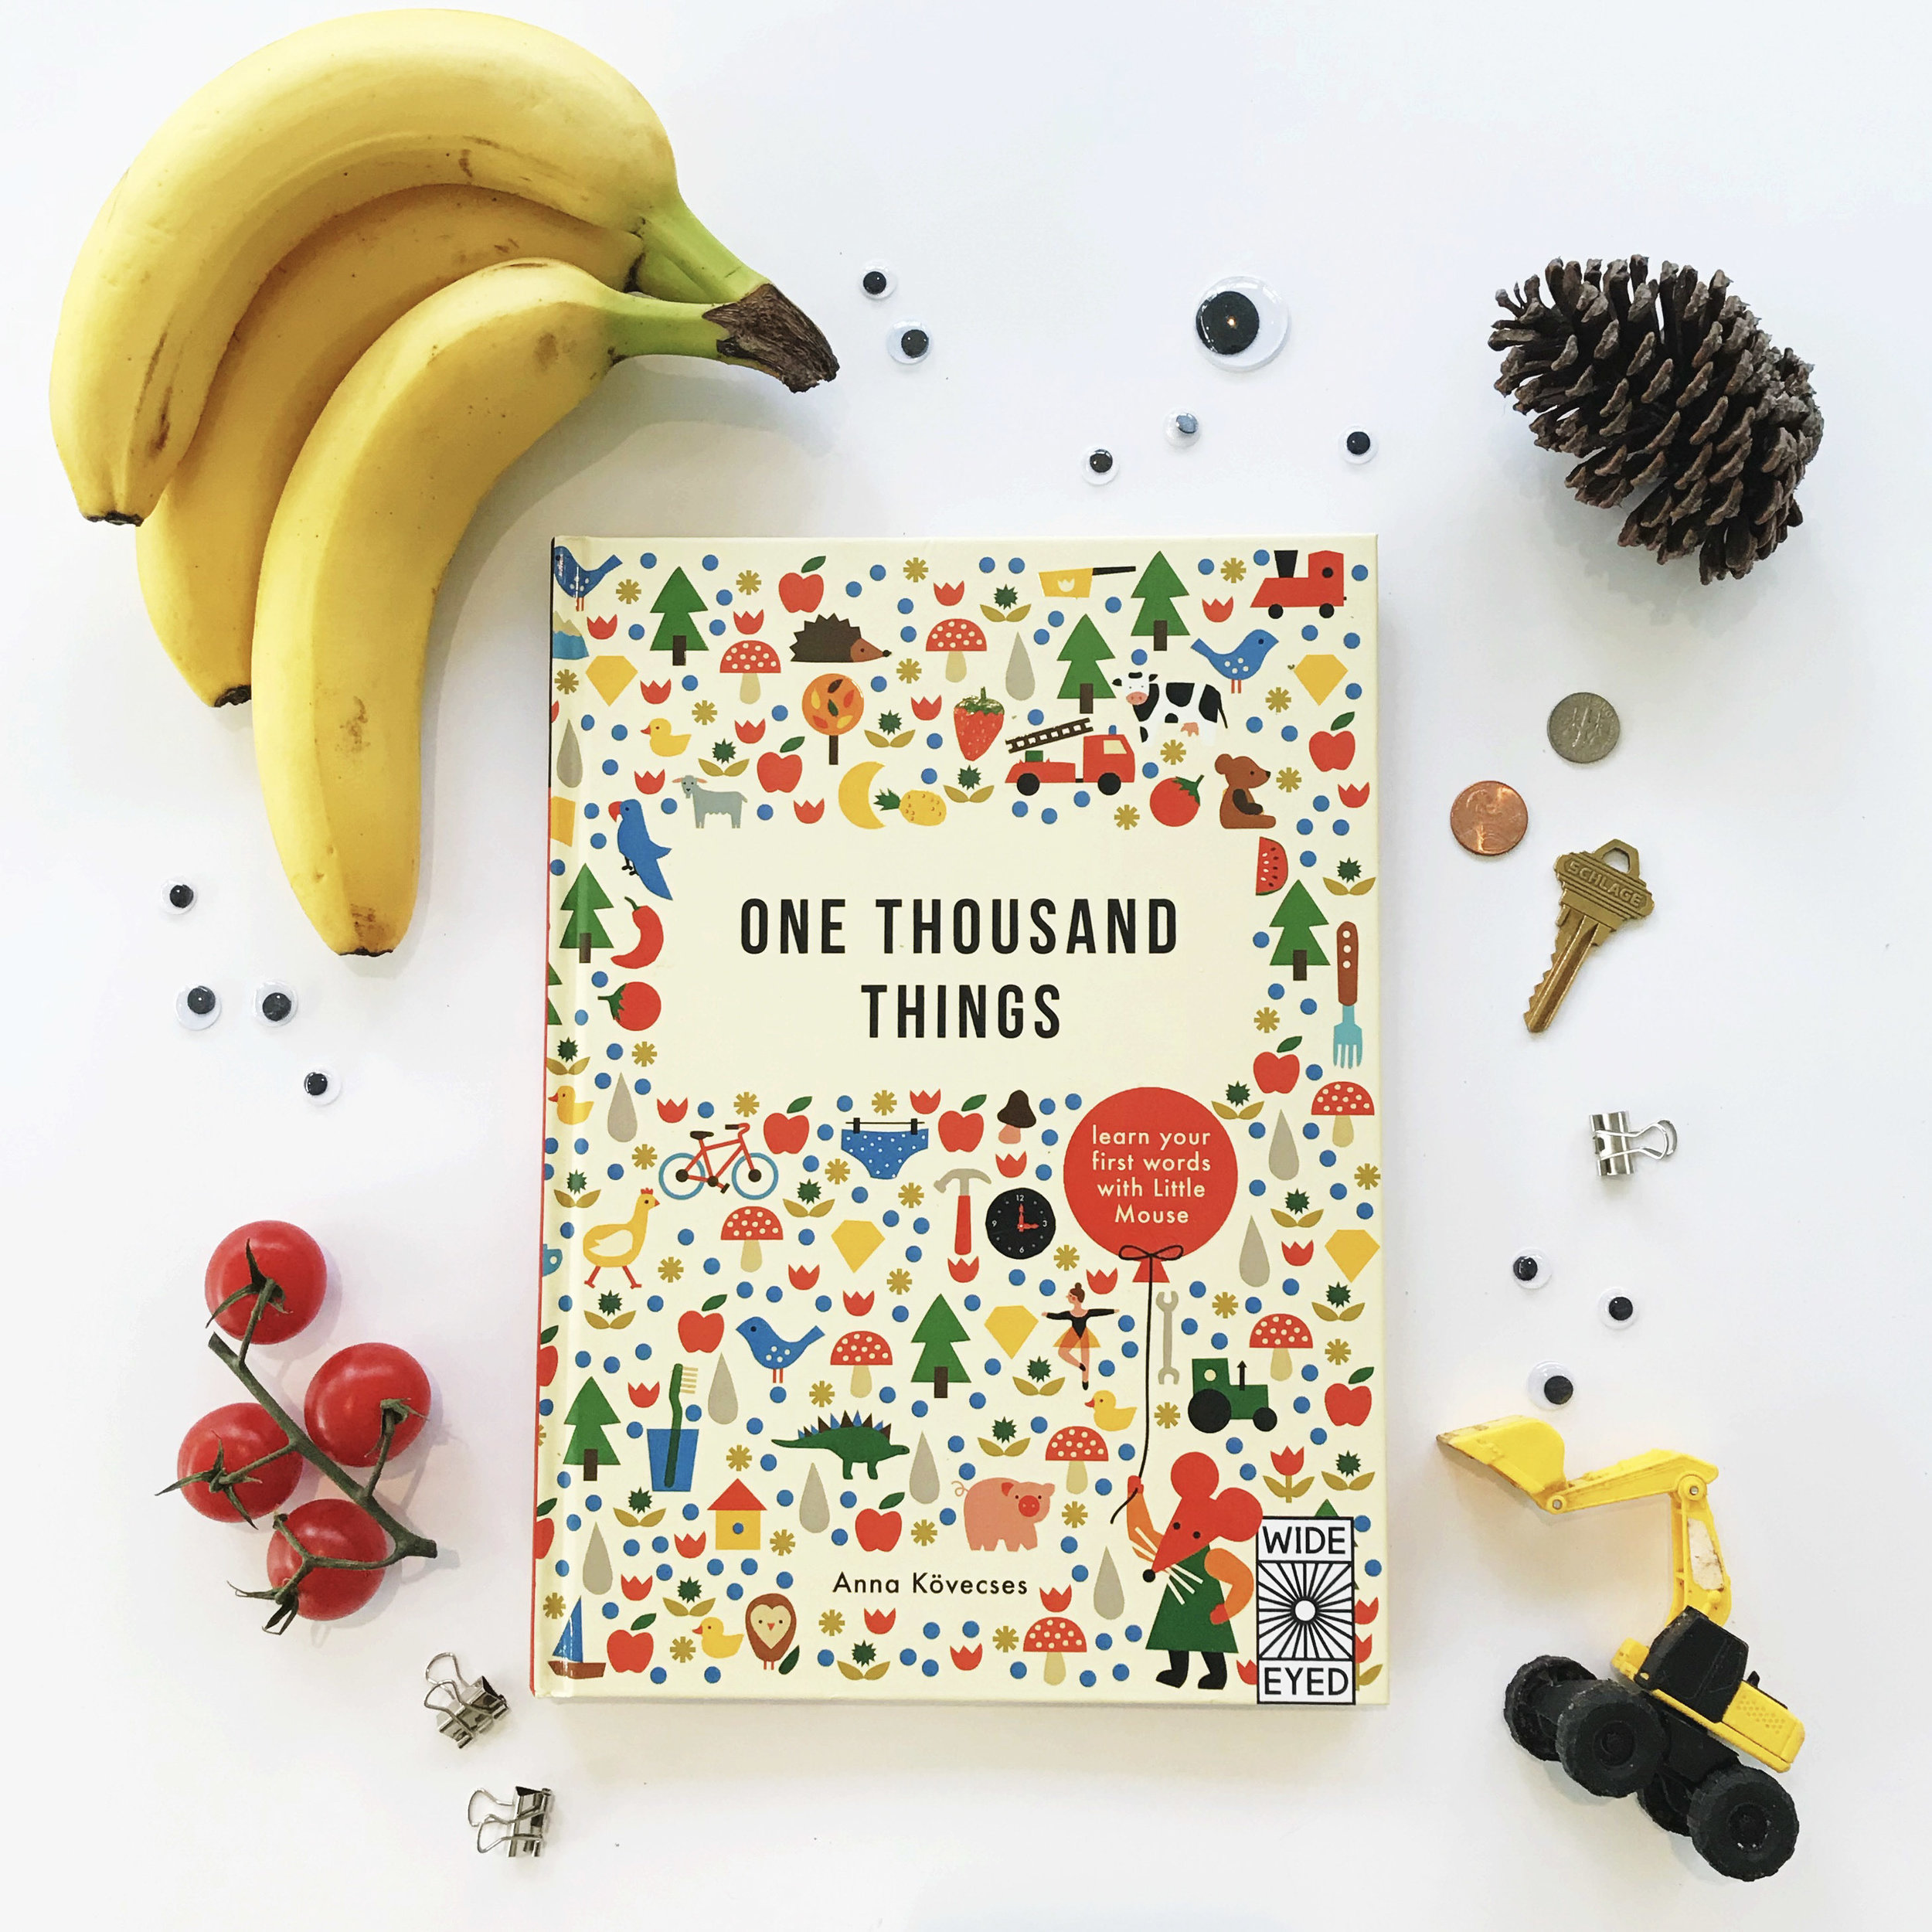 seek-and-find-one-thousand-things-kidlit-picture-books-looking-with